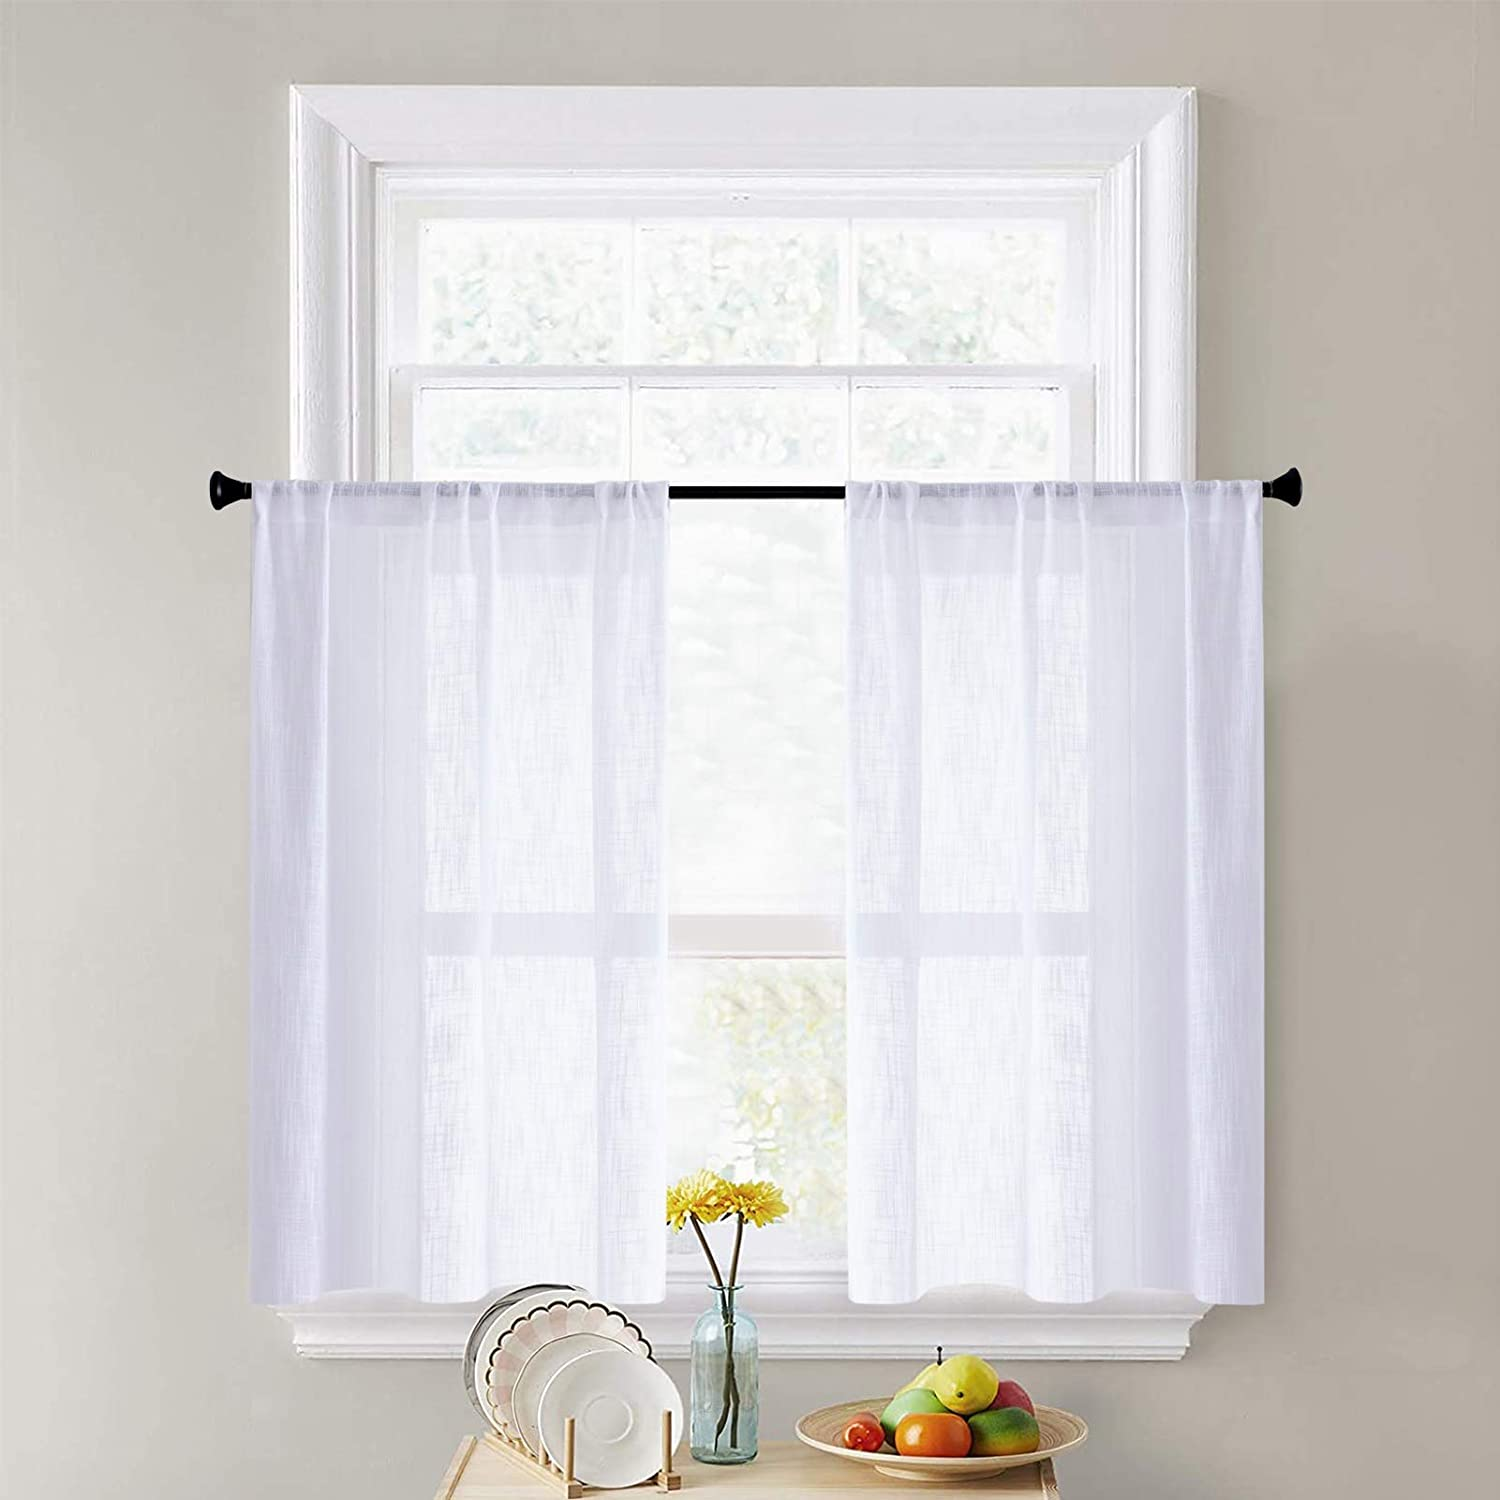 CUTEWIND White Sheer Tier Curtains for Bathroom Short Kitchen Tiers 24 Inches Long Linen Texture Rod Pocket Small Half Window Treatment (2 Panels, White, W25×L24 Inches)